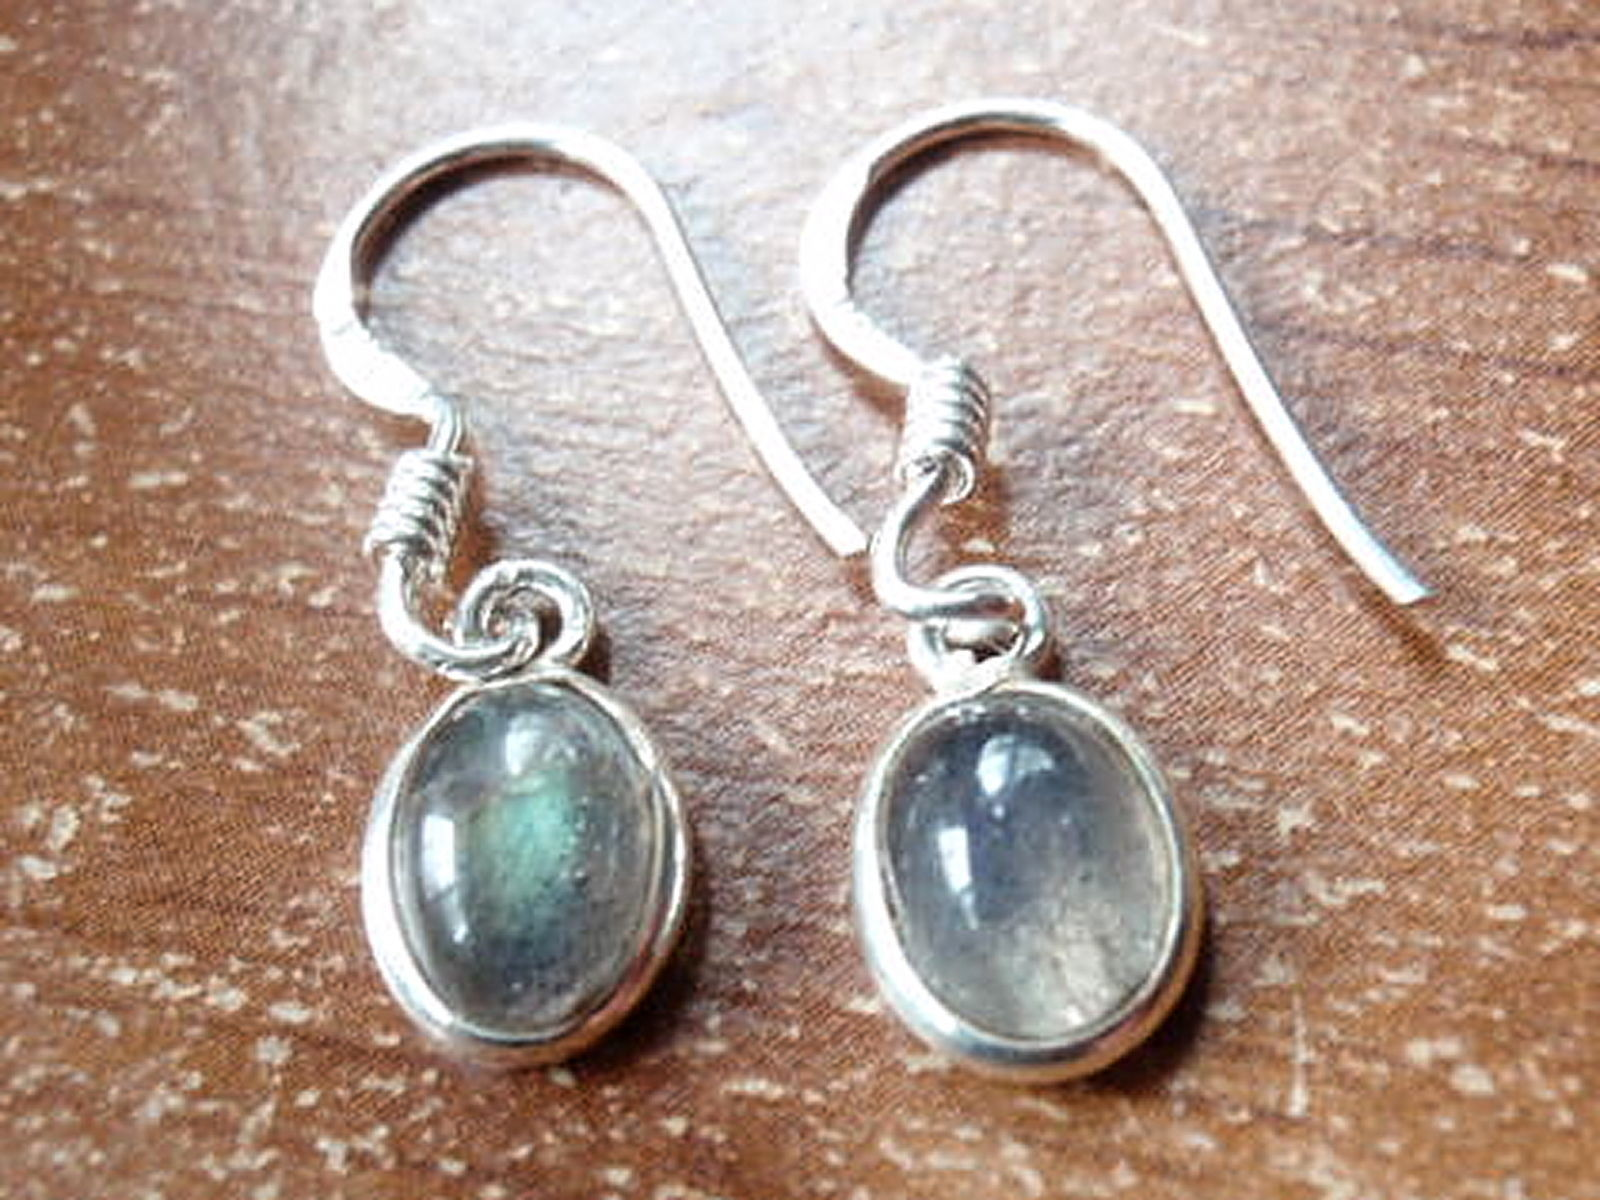 Primary image for Small Labradorite Oval Ellipse 925 Sterling Silver Dangle Earrings New 760j